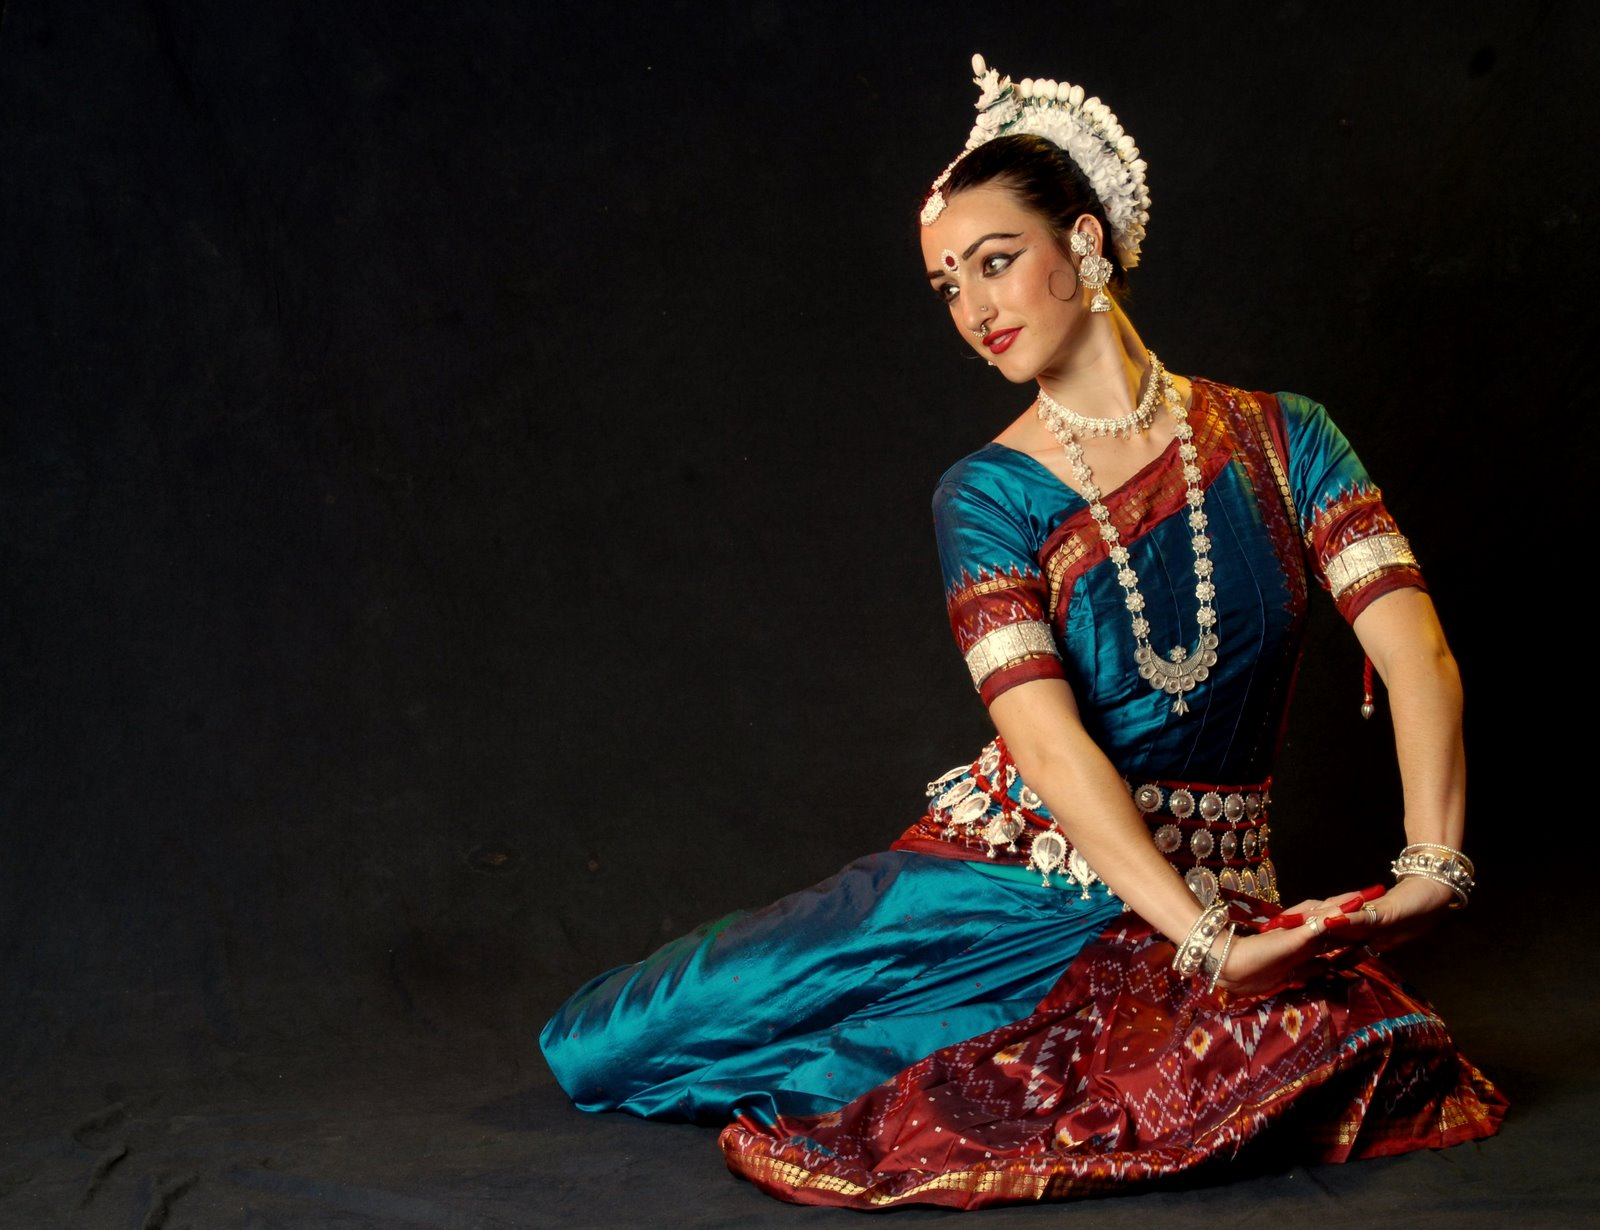 5 Cheering Indian Dance Forms To Blow Your Mind - Omagg